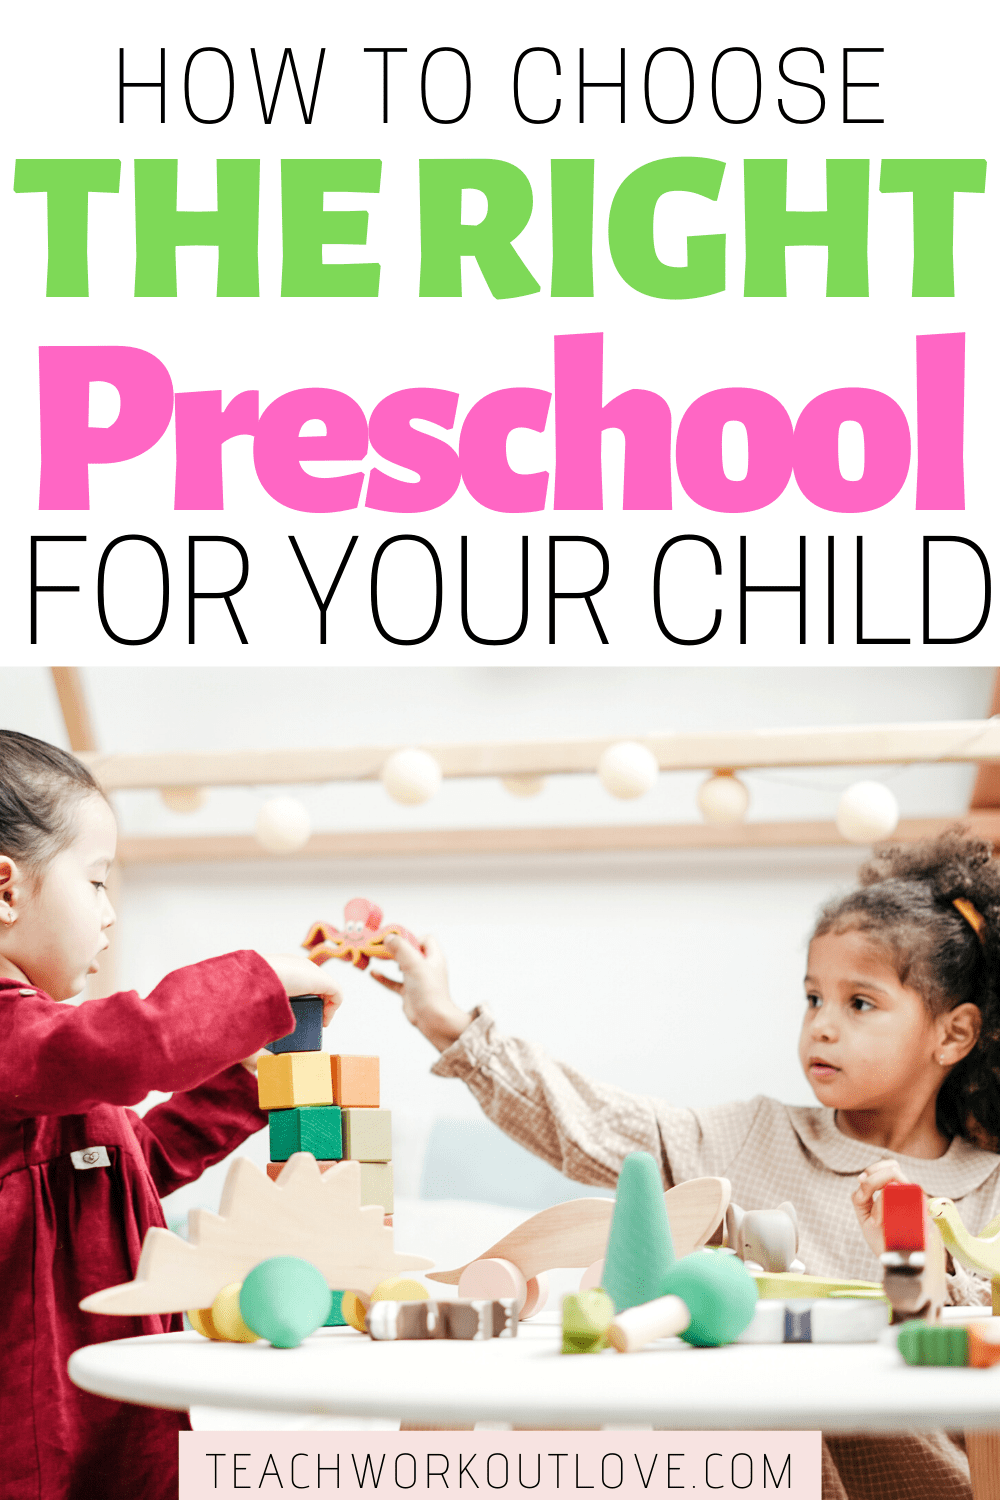 In this article, we are going to give you some of our tips to help you choose the right preschool for your child. Keep reading to find out more.